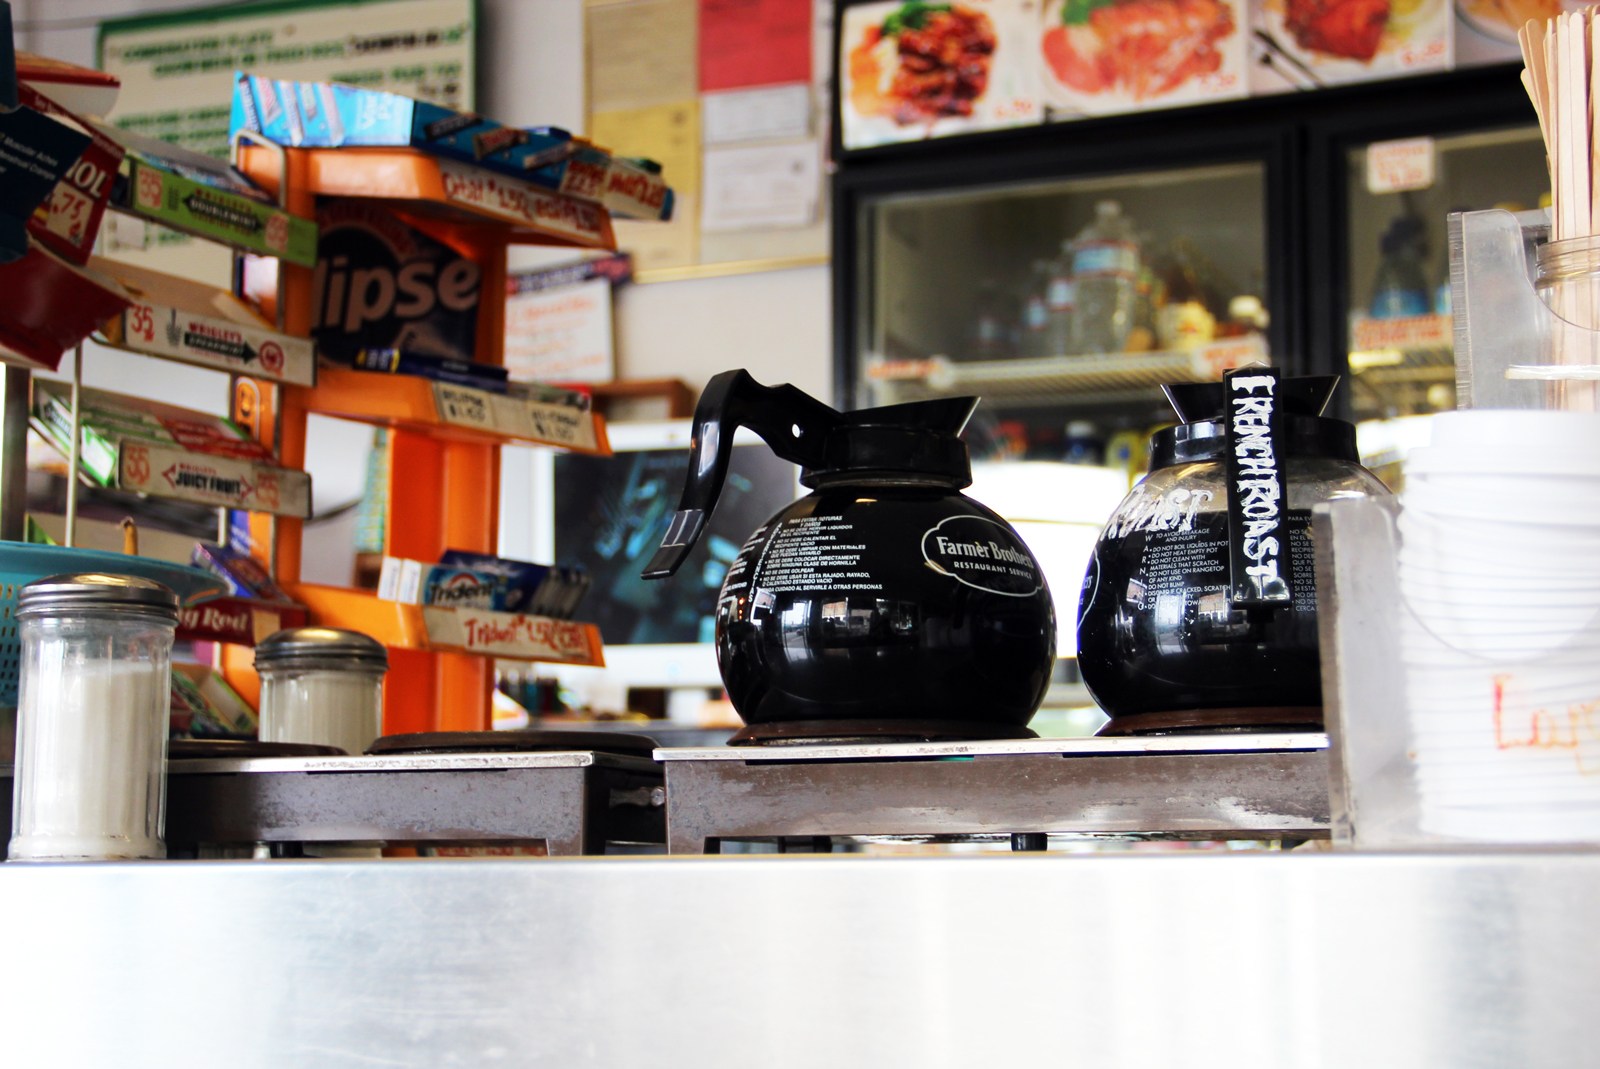 The Mission's Secret Coffee Cup: Jim Georgie's Chinese Food and Donuts